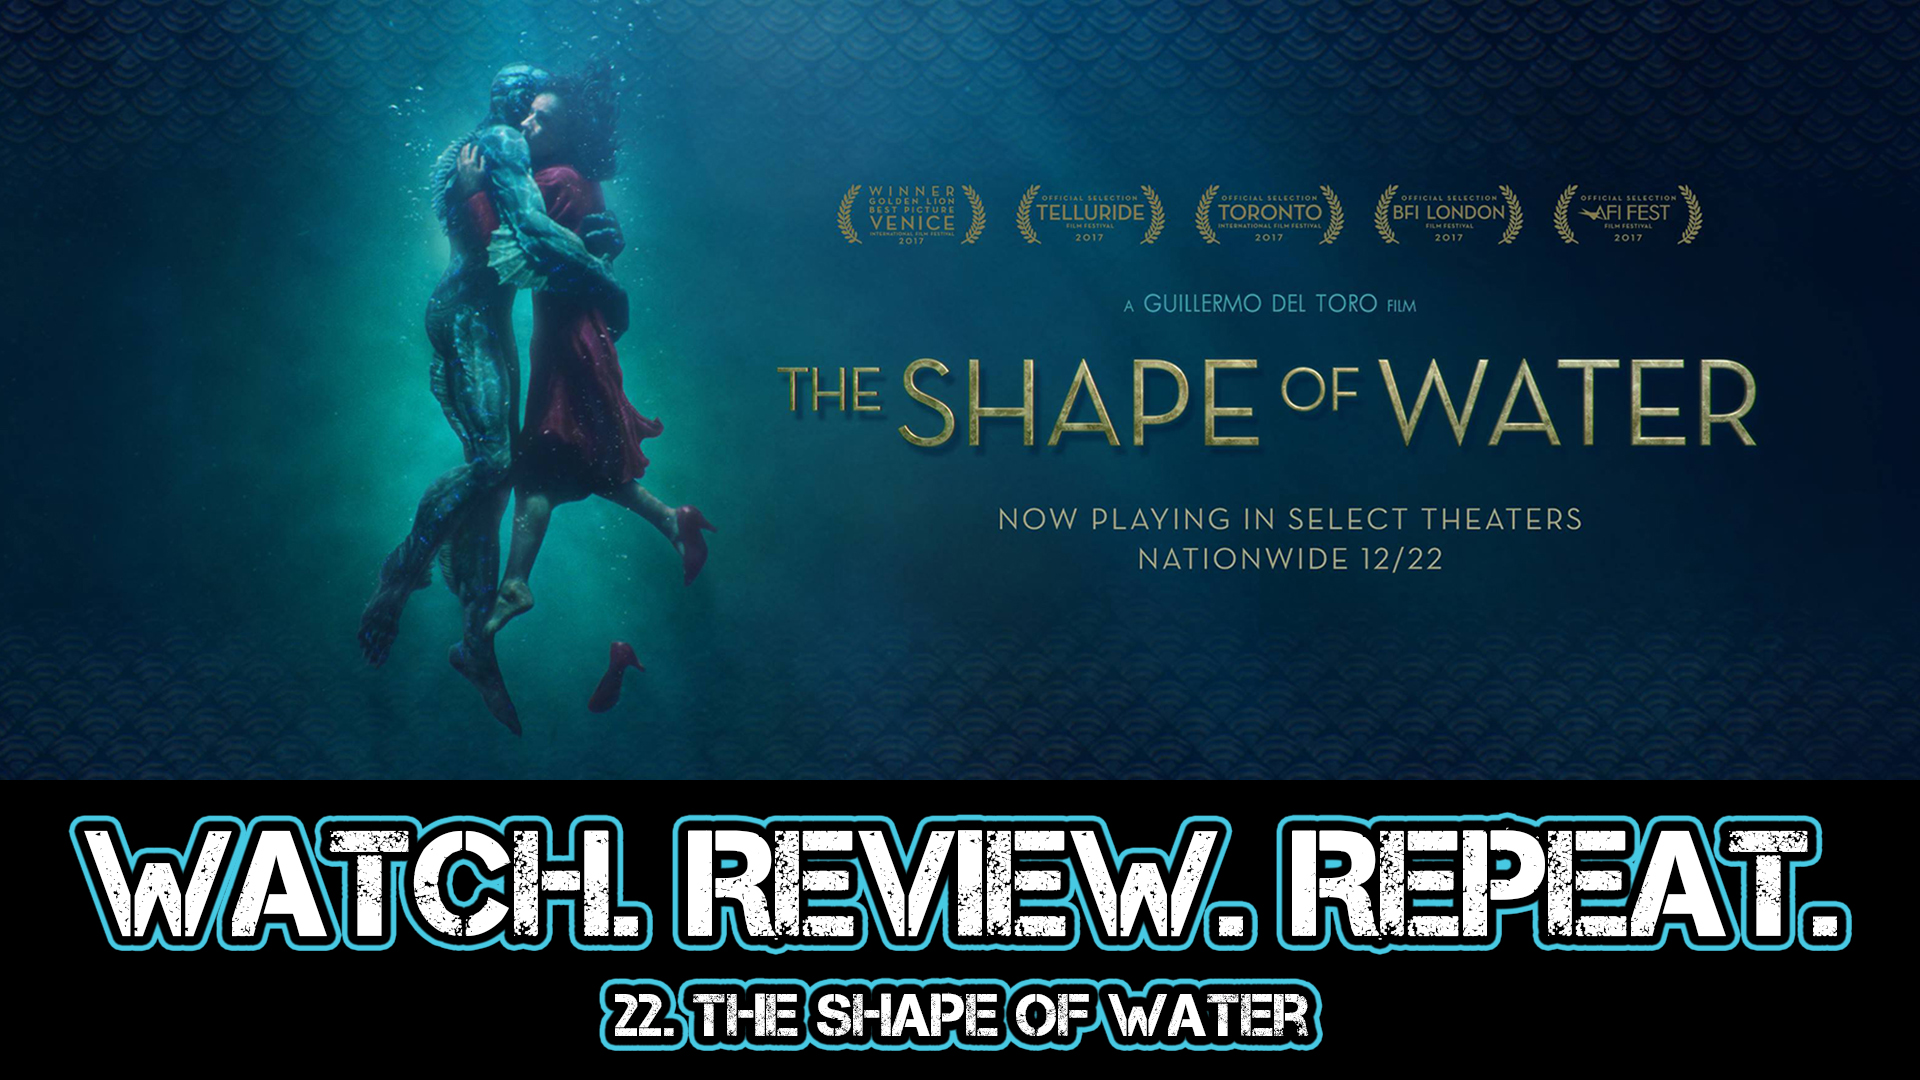 22. The Shape of Water